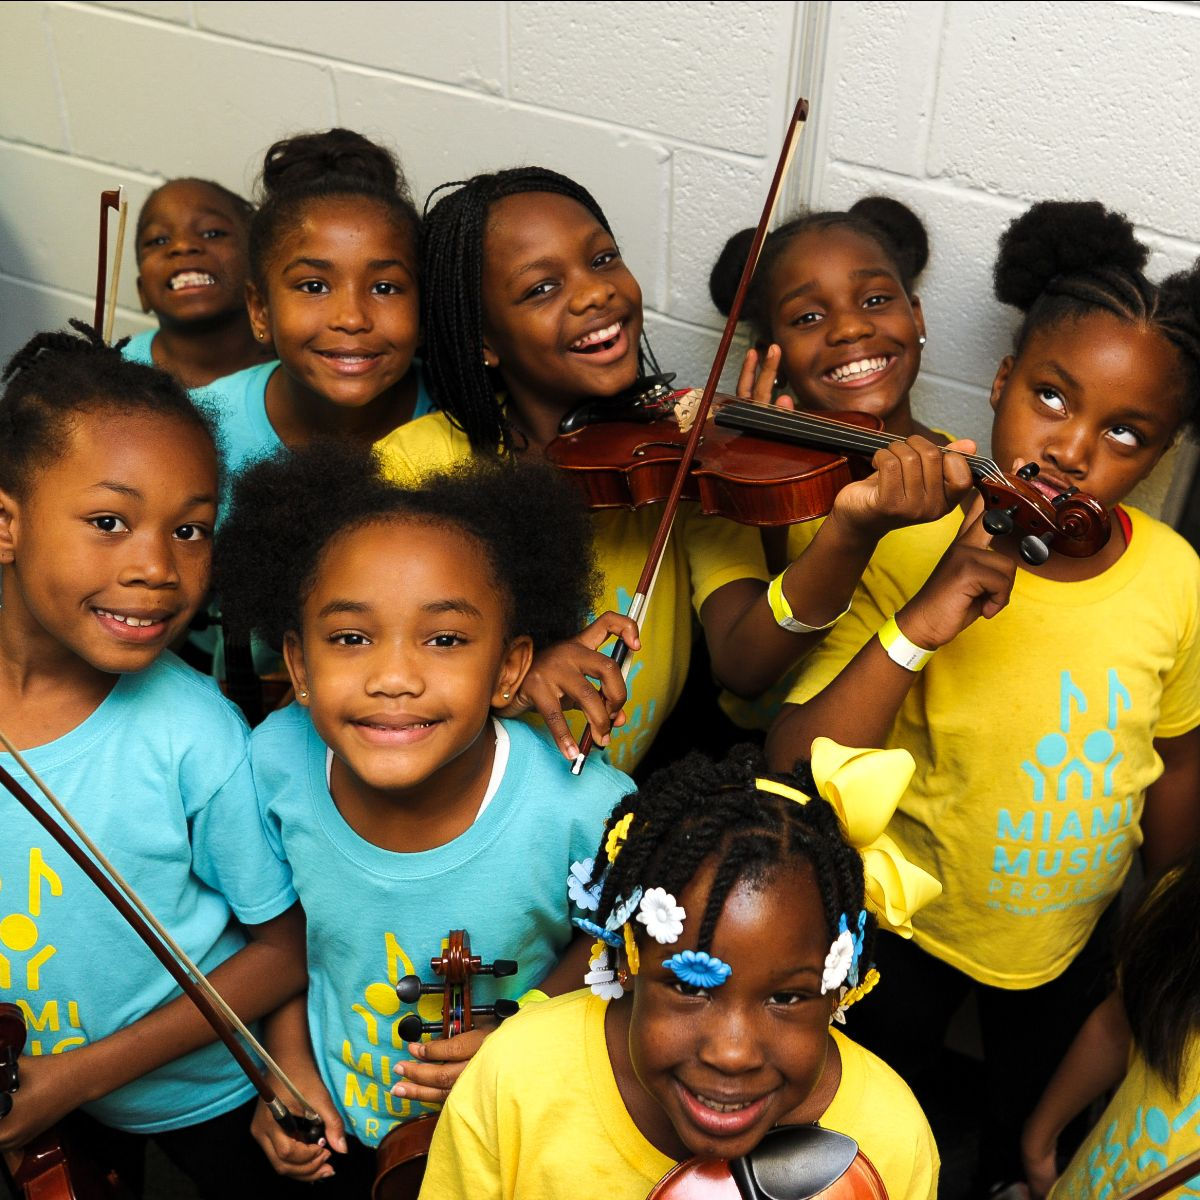 Smiling kids with string instruments.